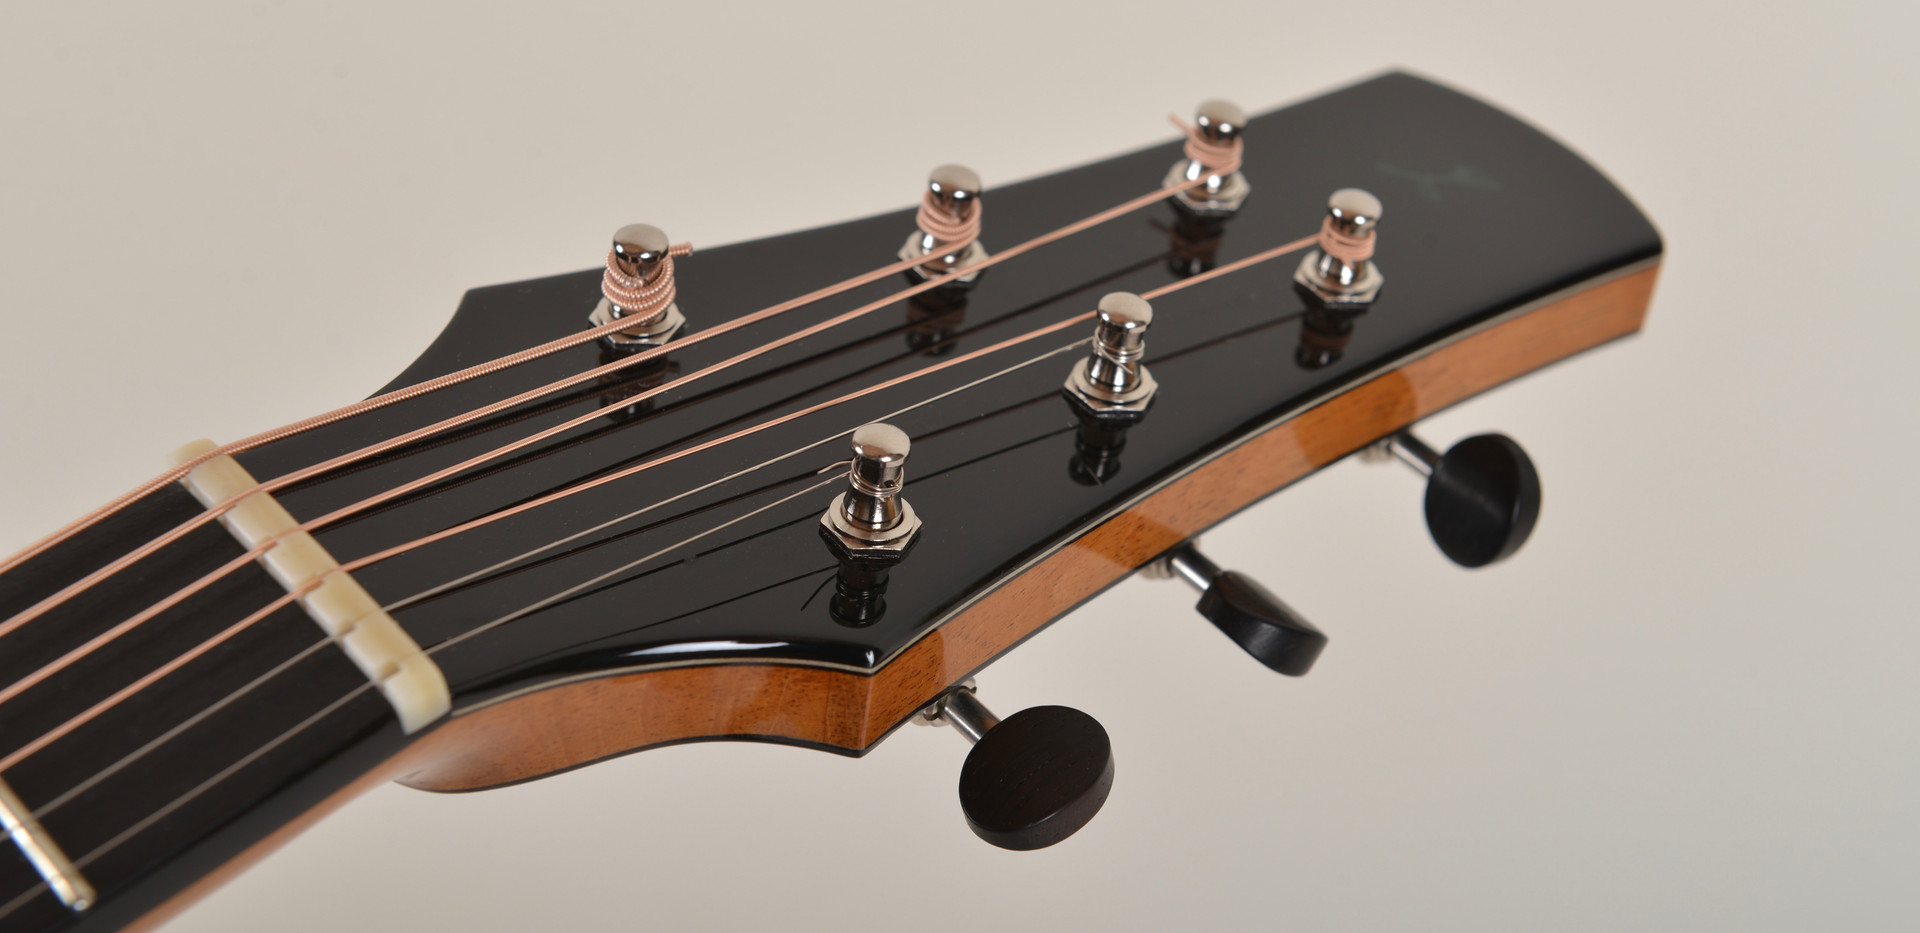 R.2, #26, Waverly tuners, compensated nut